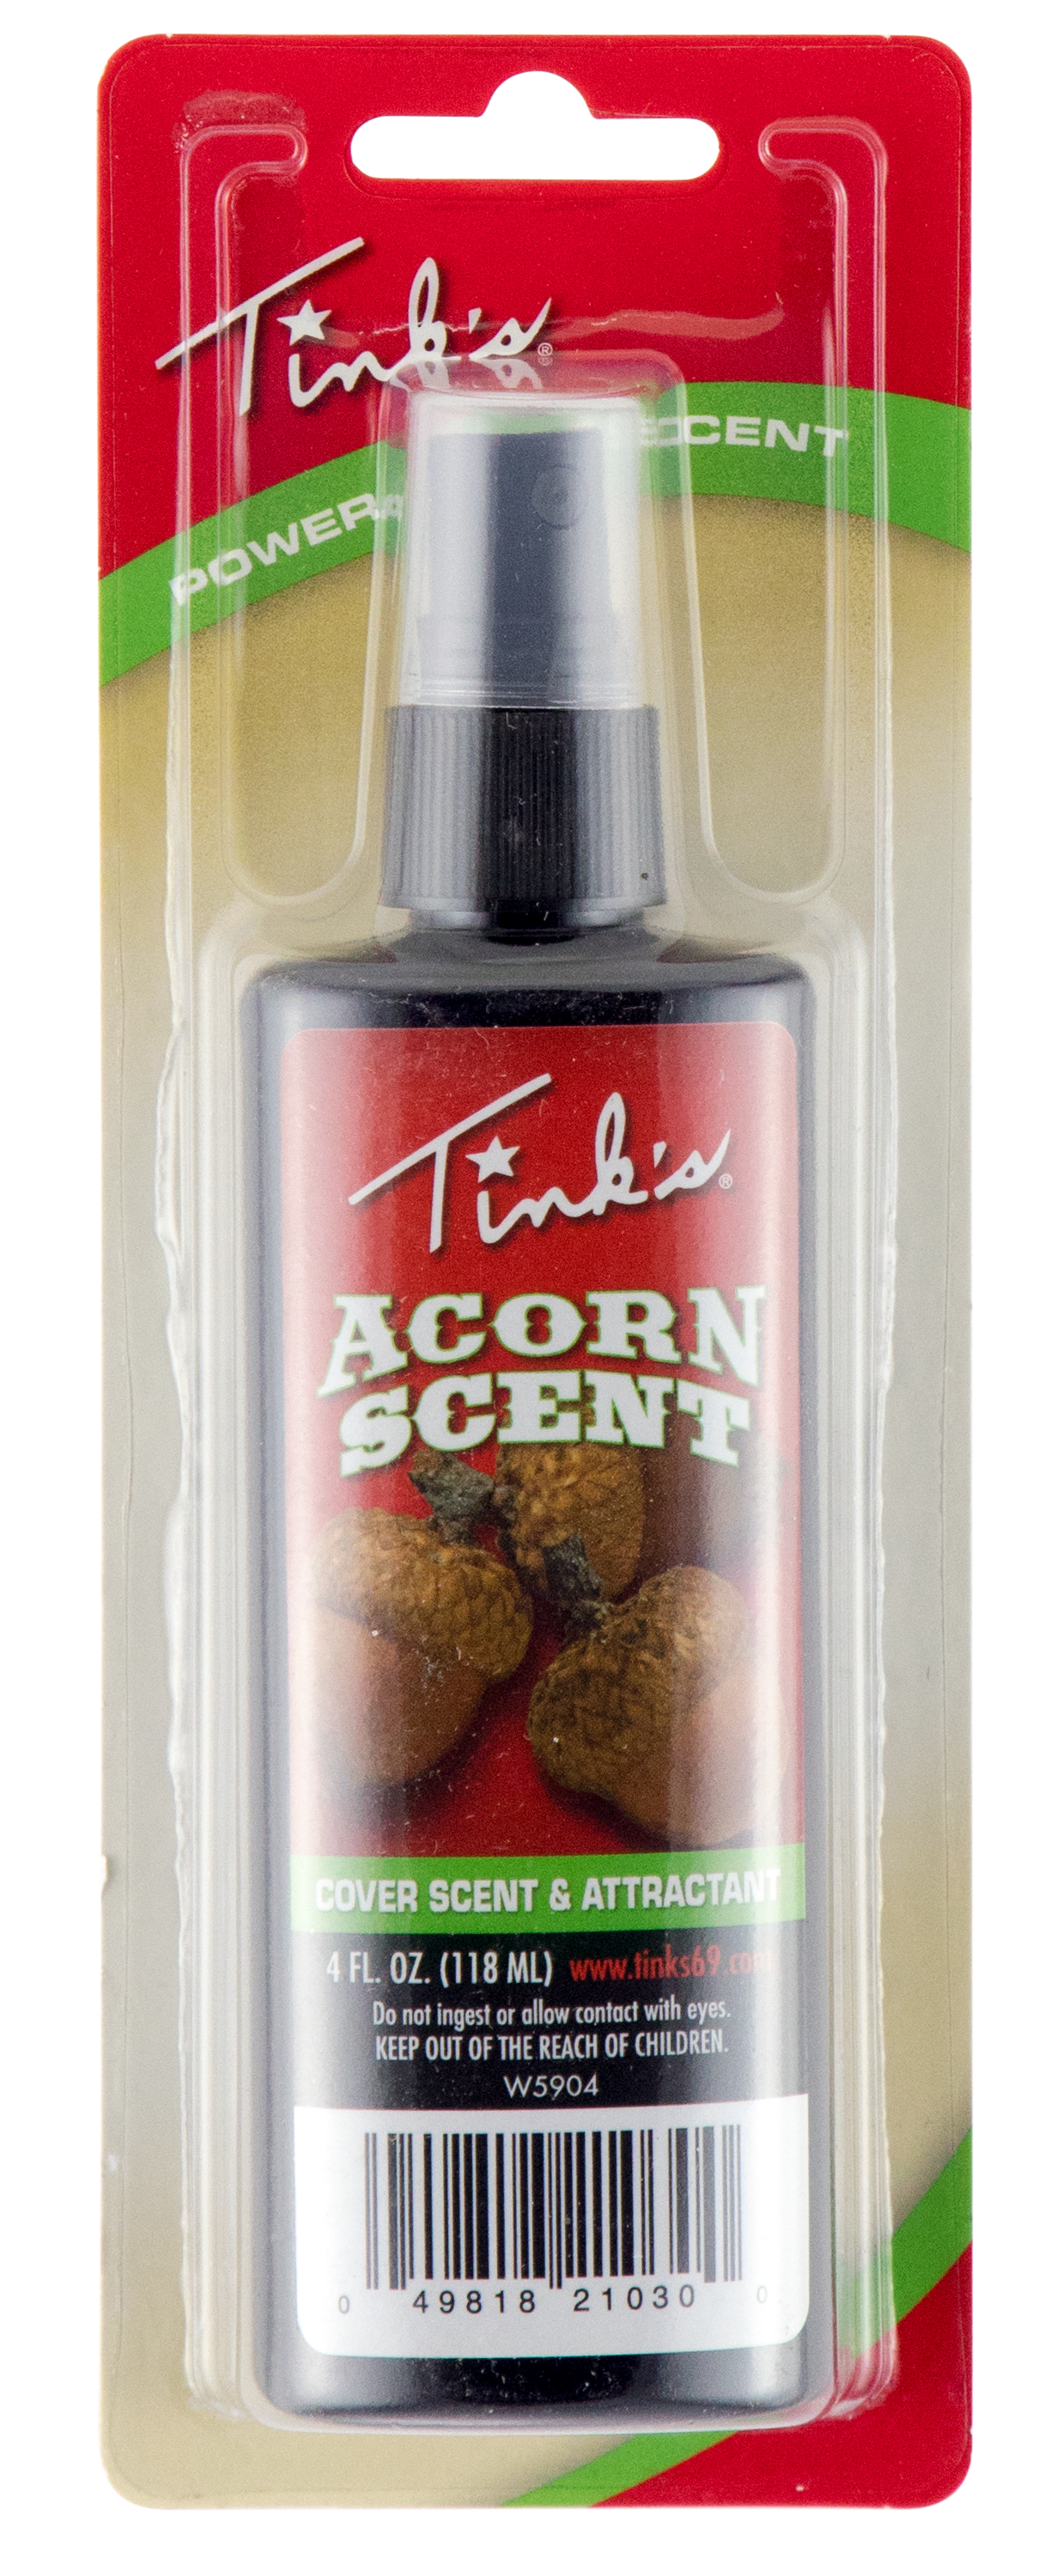 Tinks W5904 Acorn Cover Scent & Attractant 4oz